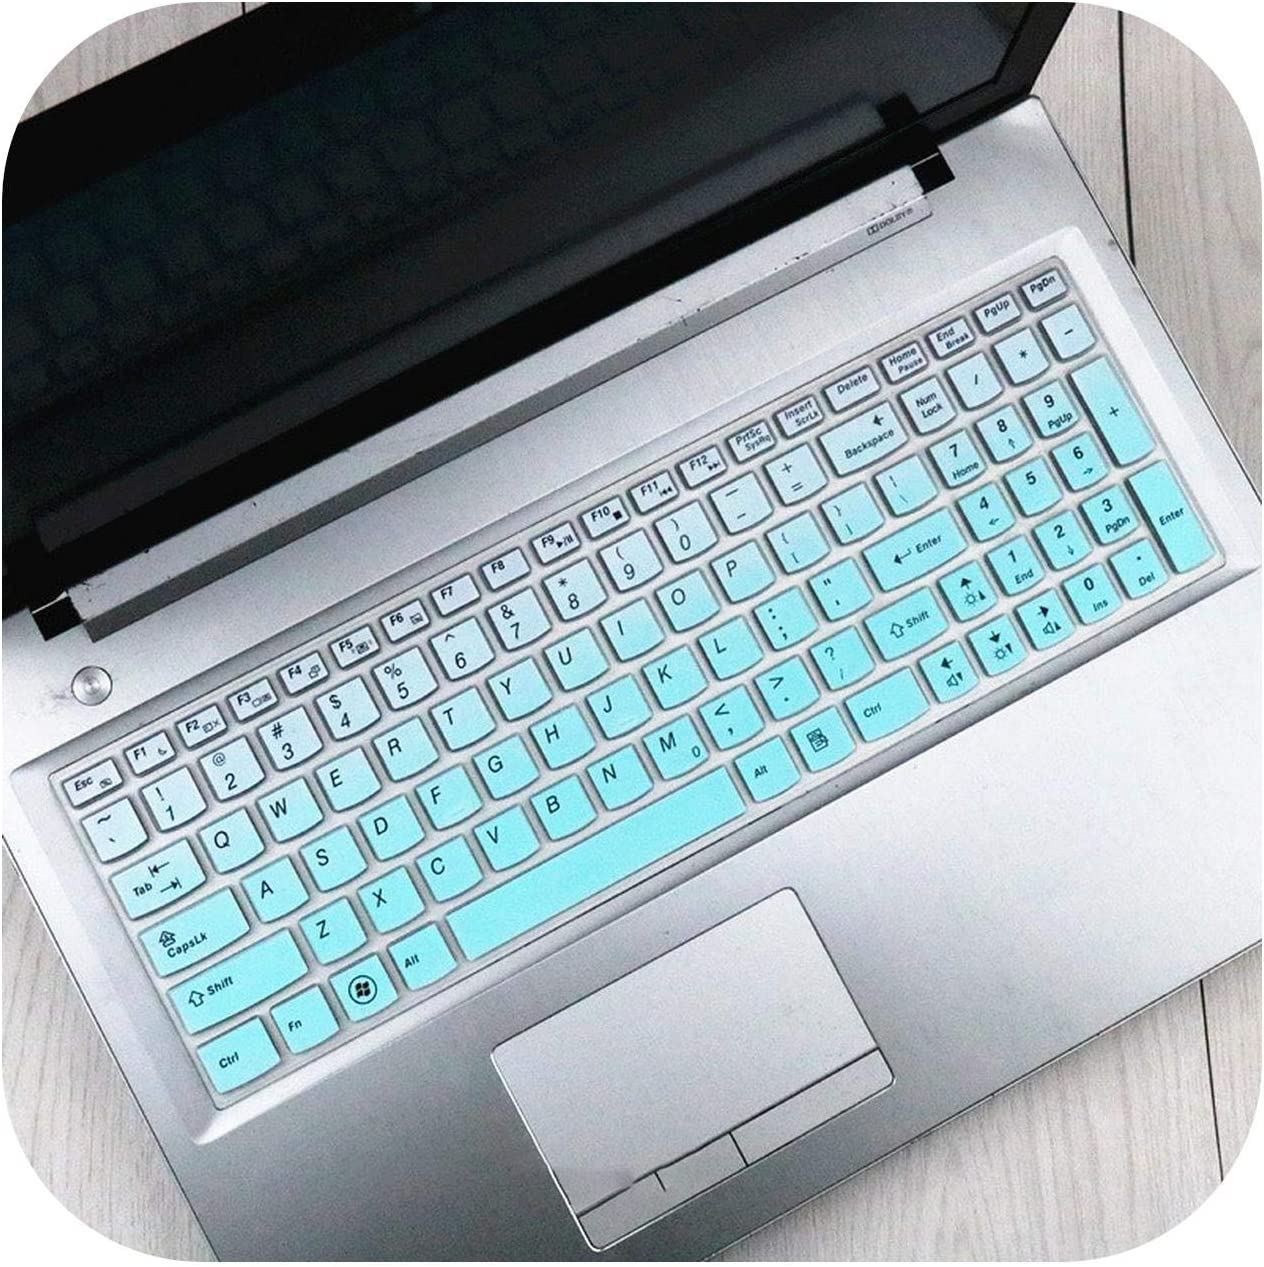 2020 Silicone Keyboard Cover Protector Skin for Lenovo Ideapad Y580 Y570 Y570D Y500 Y510 Y510P Z580 Z560 Z565 Z570 Z575 Laptop-Gradualskyblue